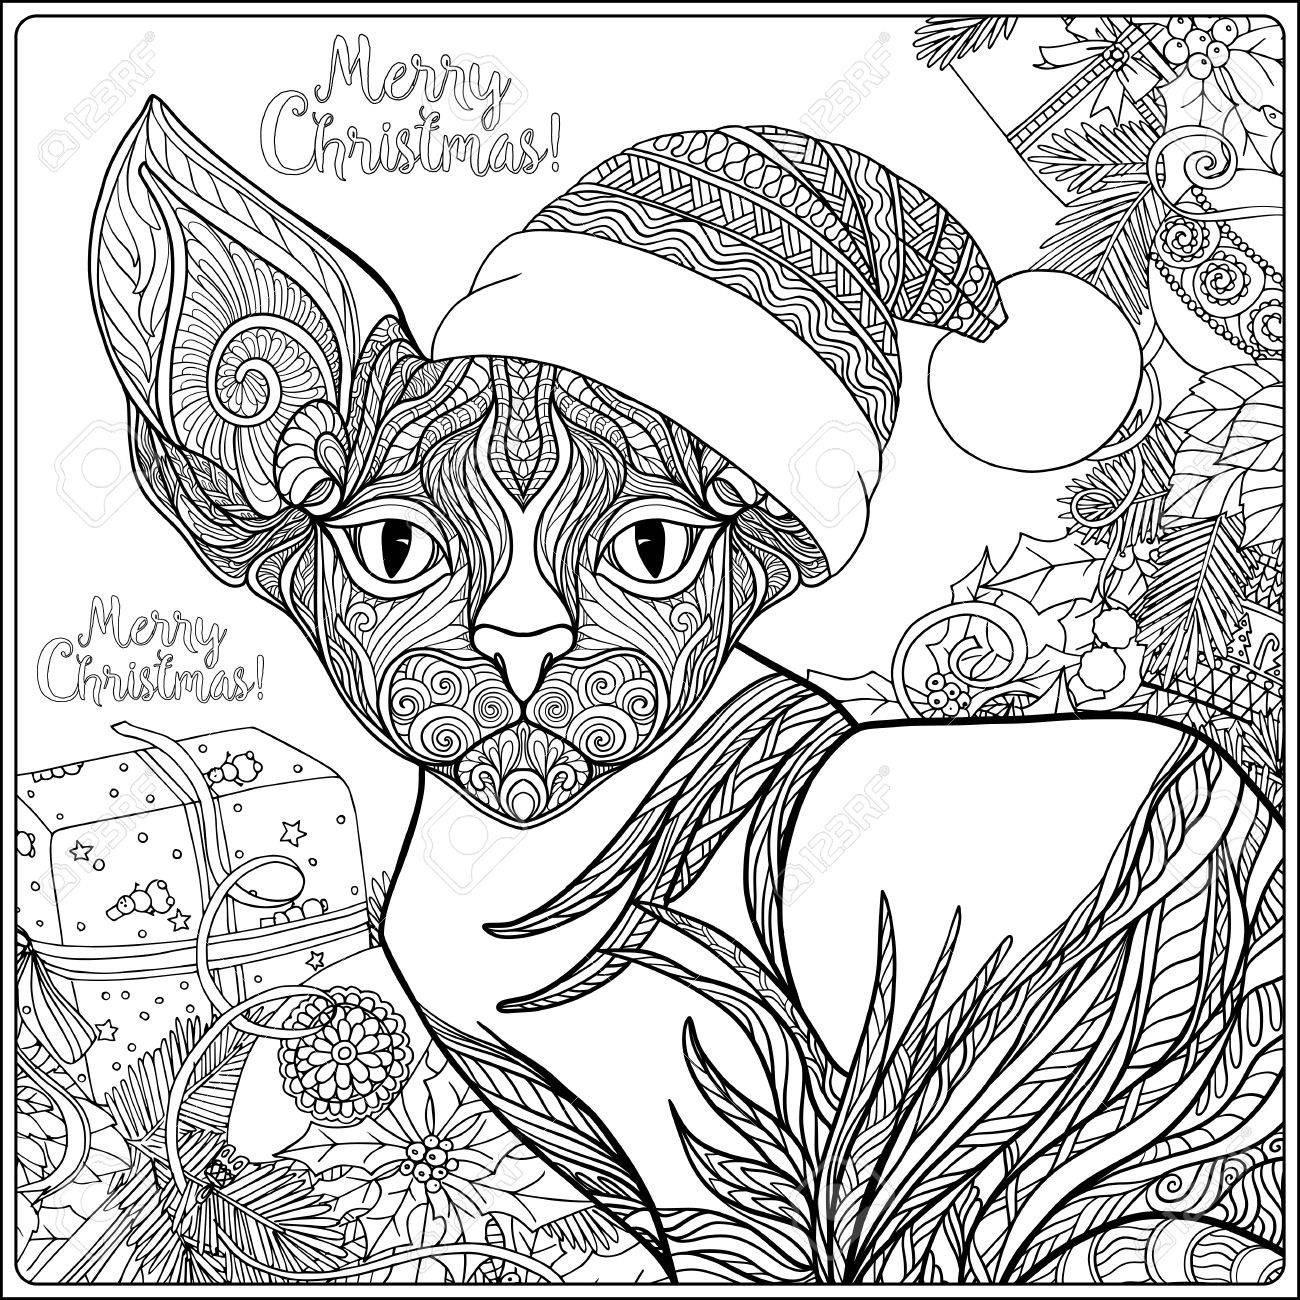 1300x1300 Decorative Patterned Cat In The Hat Of Santa Claus On A Background